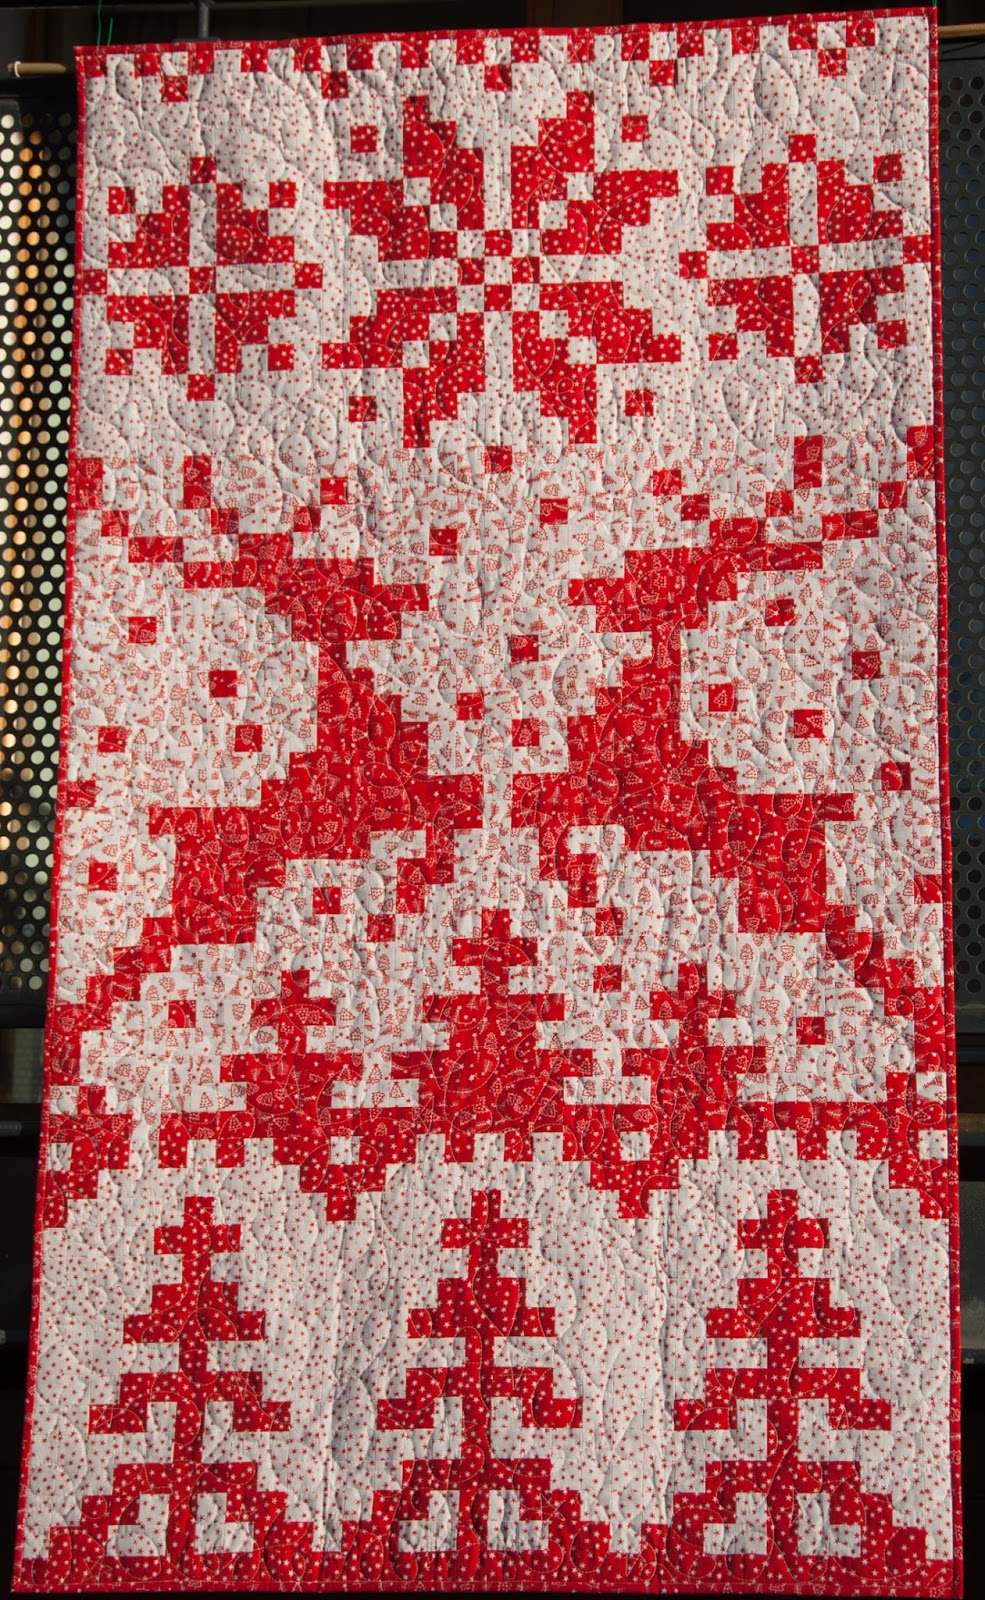 Quilt Art by Olena Pugachova: Nordic Christmas